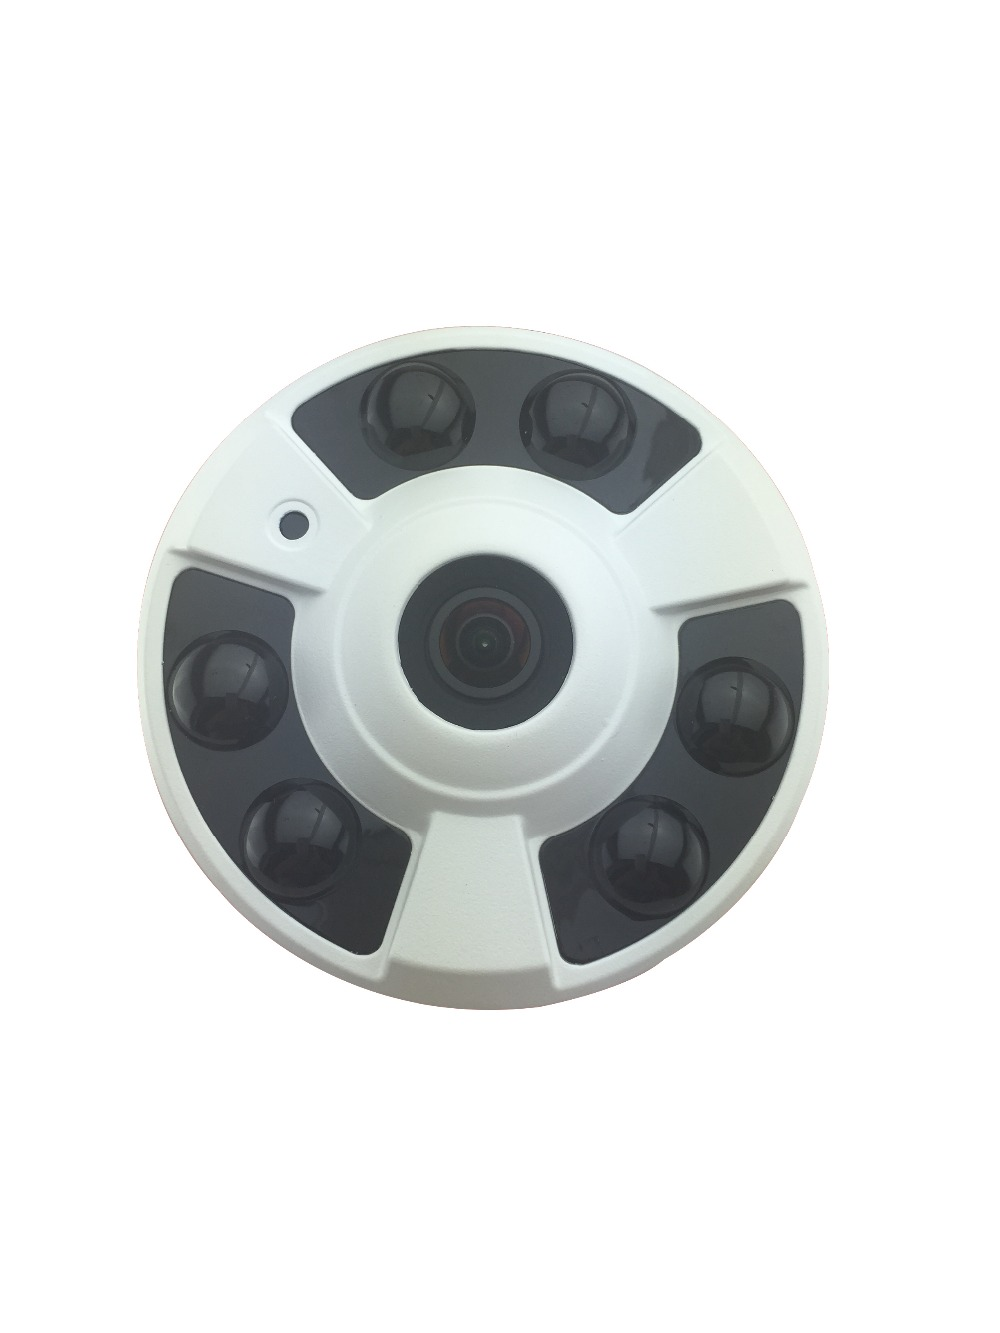 ФОТО Audio POE Fisheye 170Degree HD 720P 1.0MP IP Camera Indoor Security Network P2P 6IR Night Vision